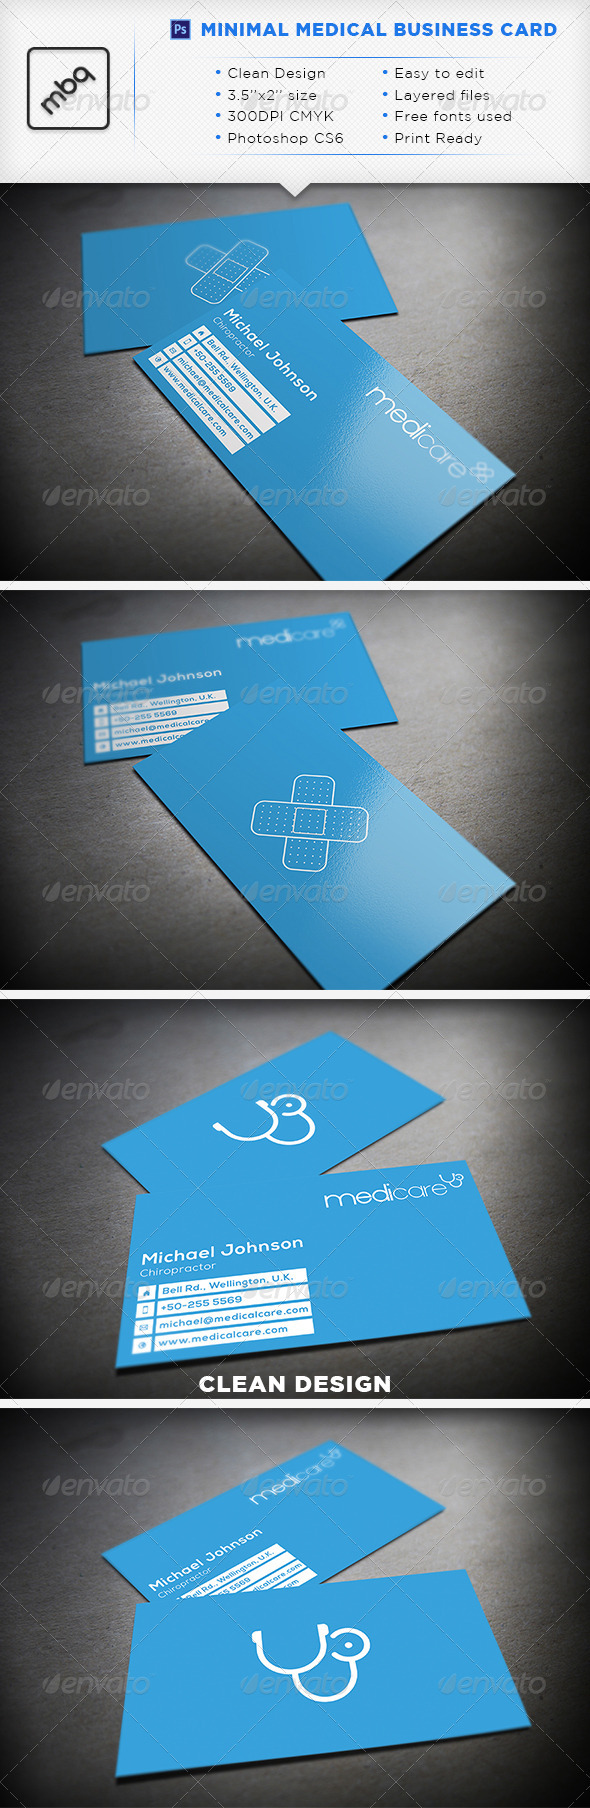 GraphicRiver Minimal Medical Business Card 3447405